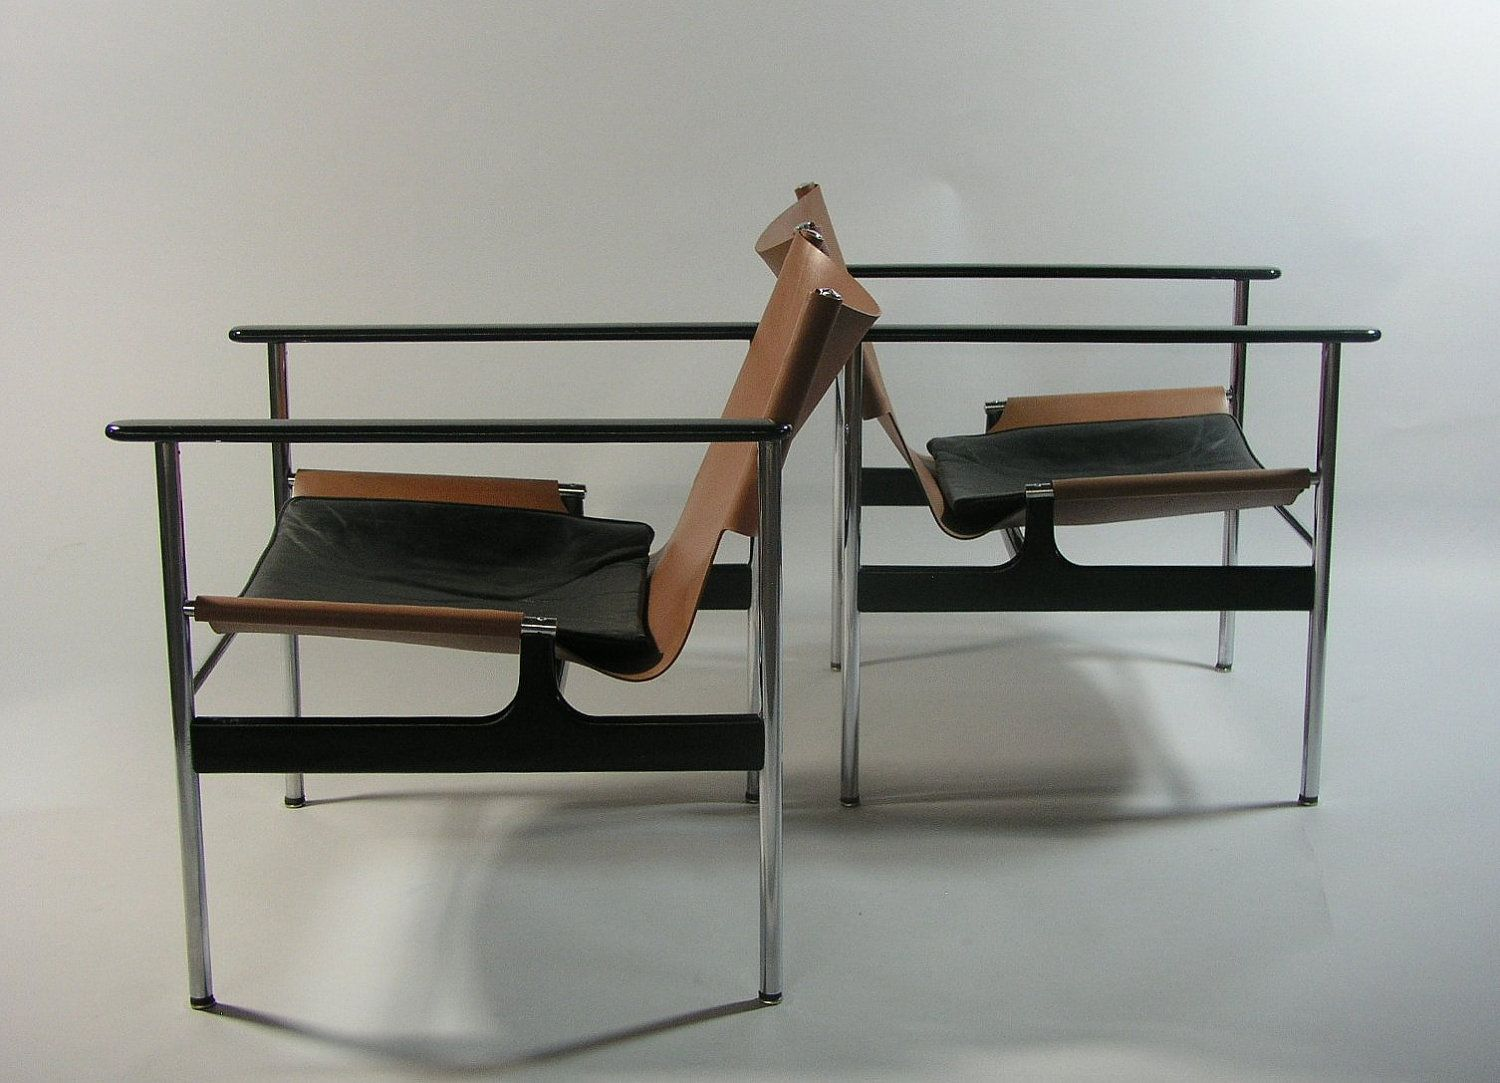 1960 Charles Pollock Sling Lounge Chair Model 657 for Knoll